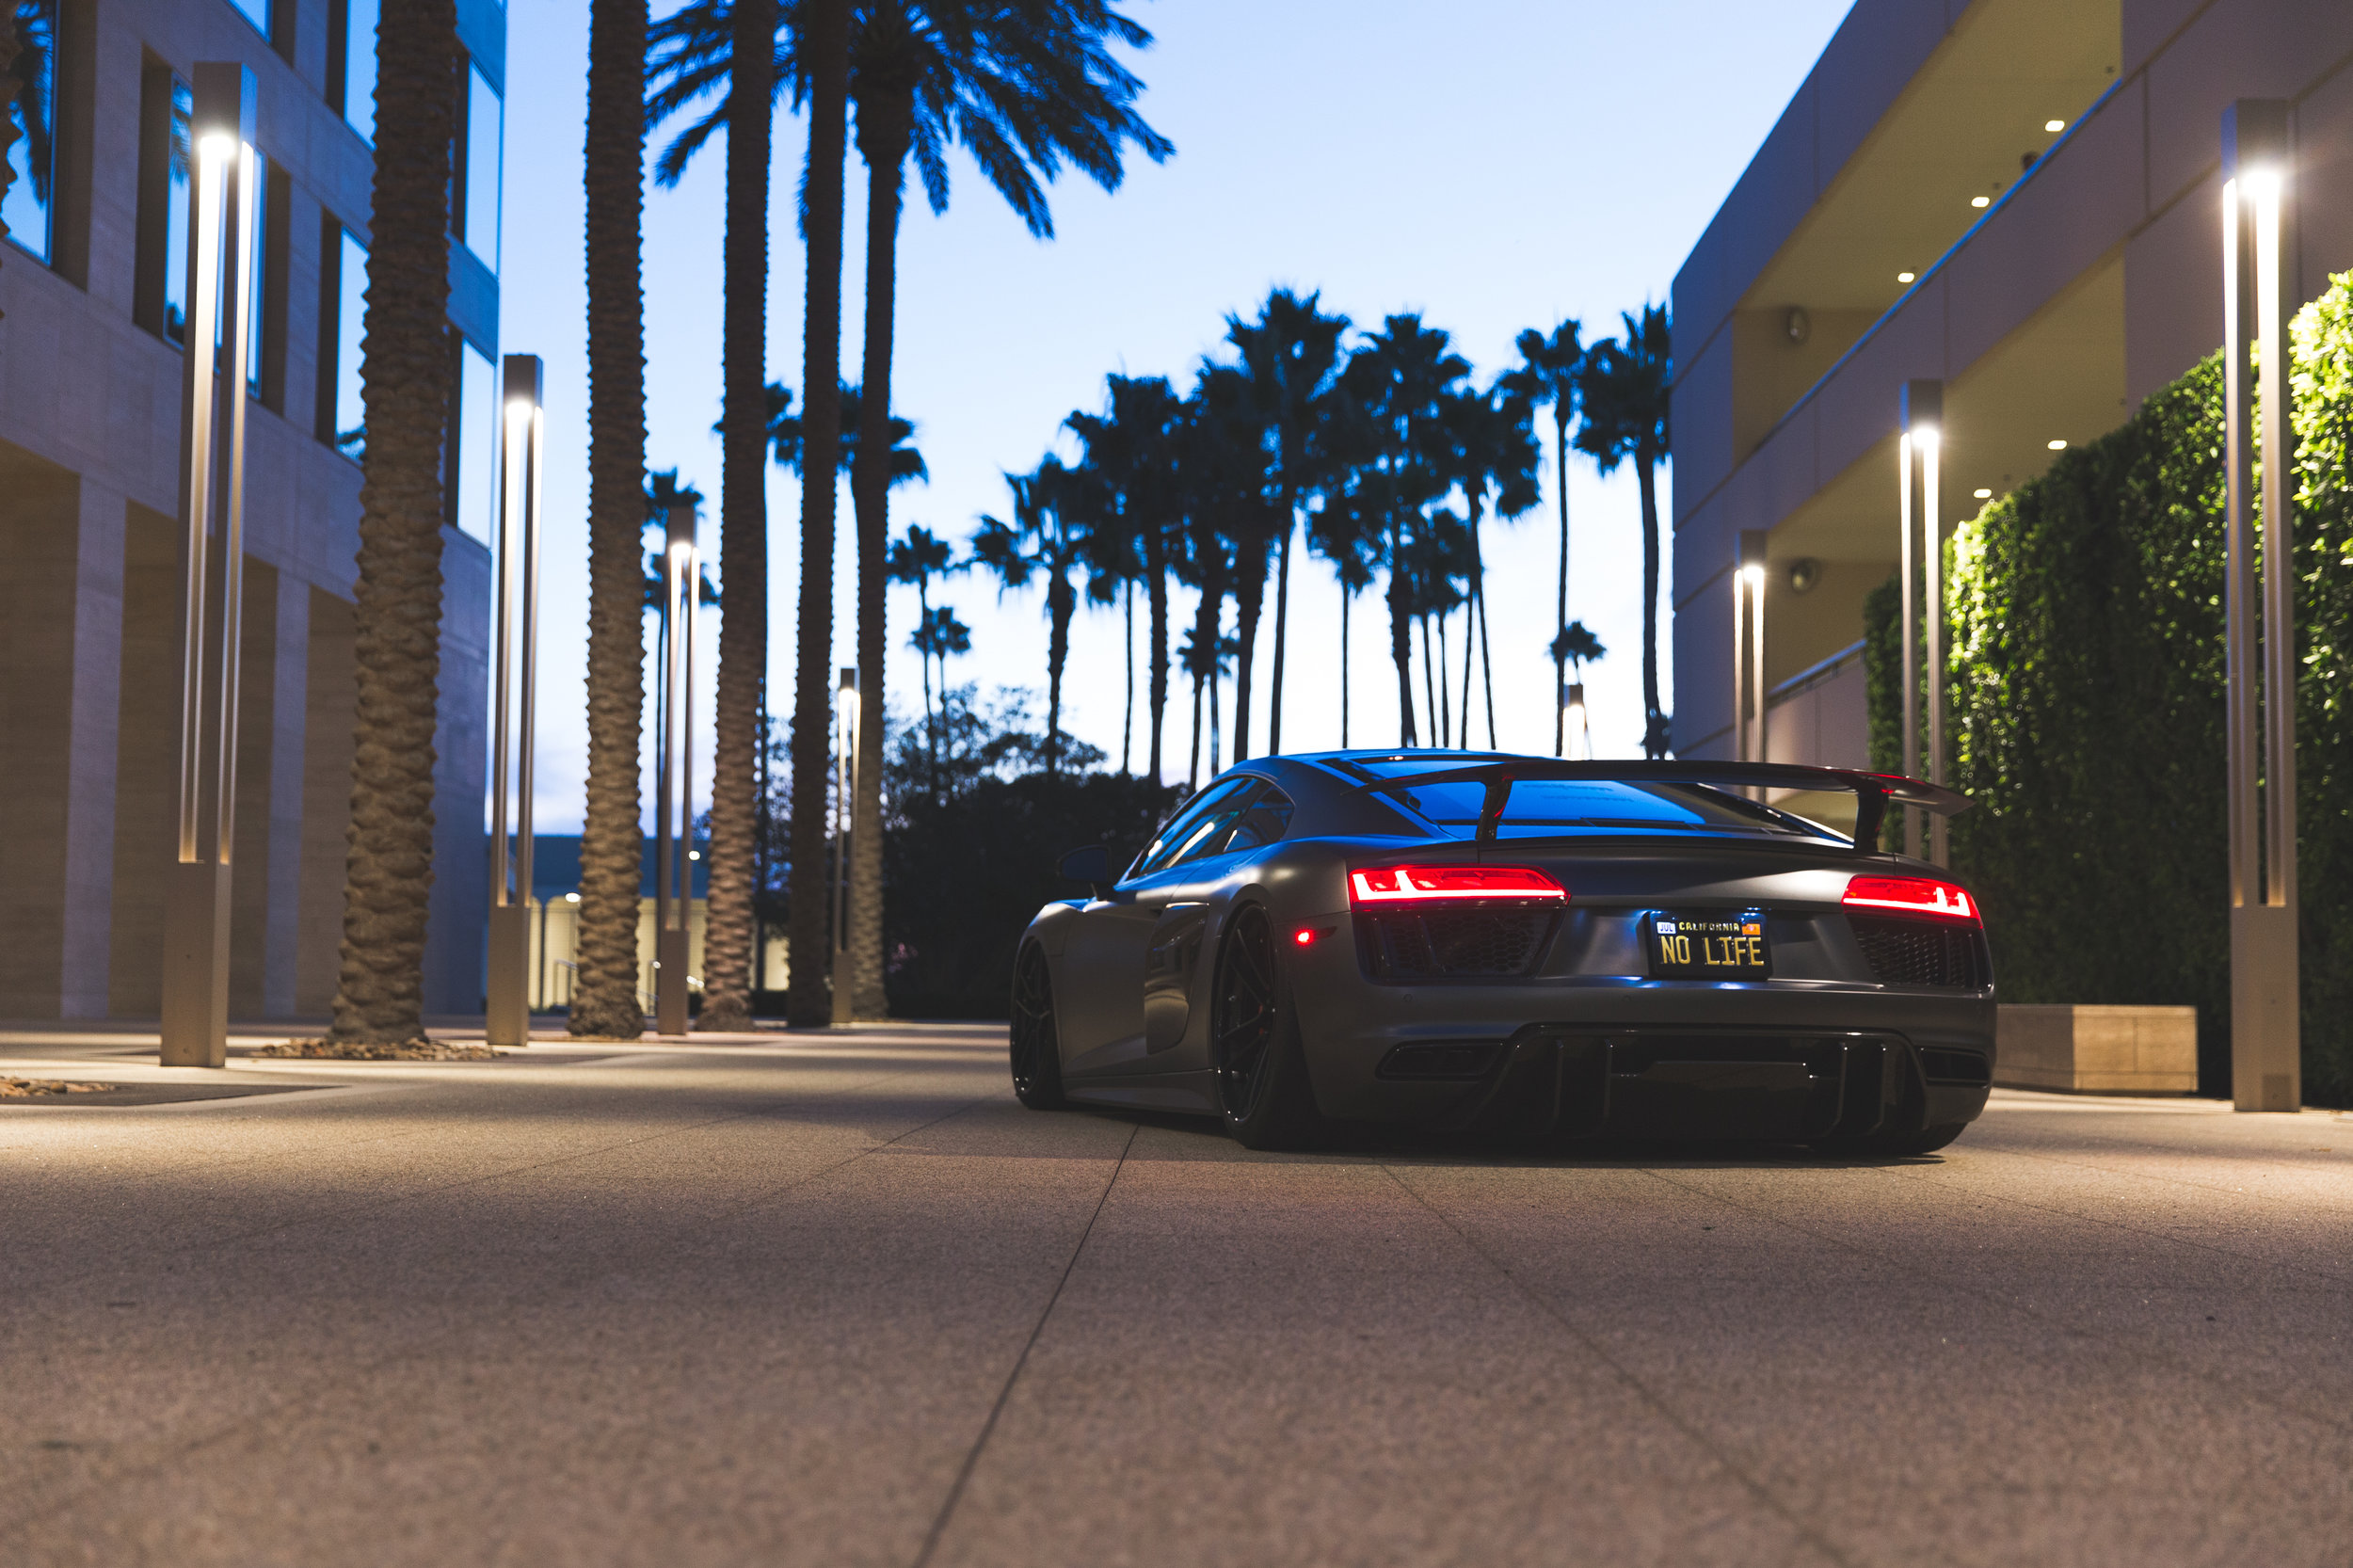 Stay_Driven_Page_R8_Newport-37.jpg